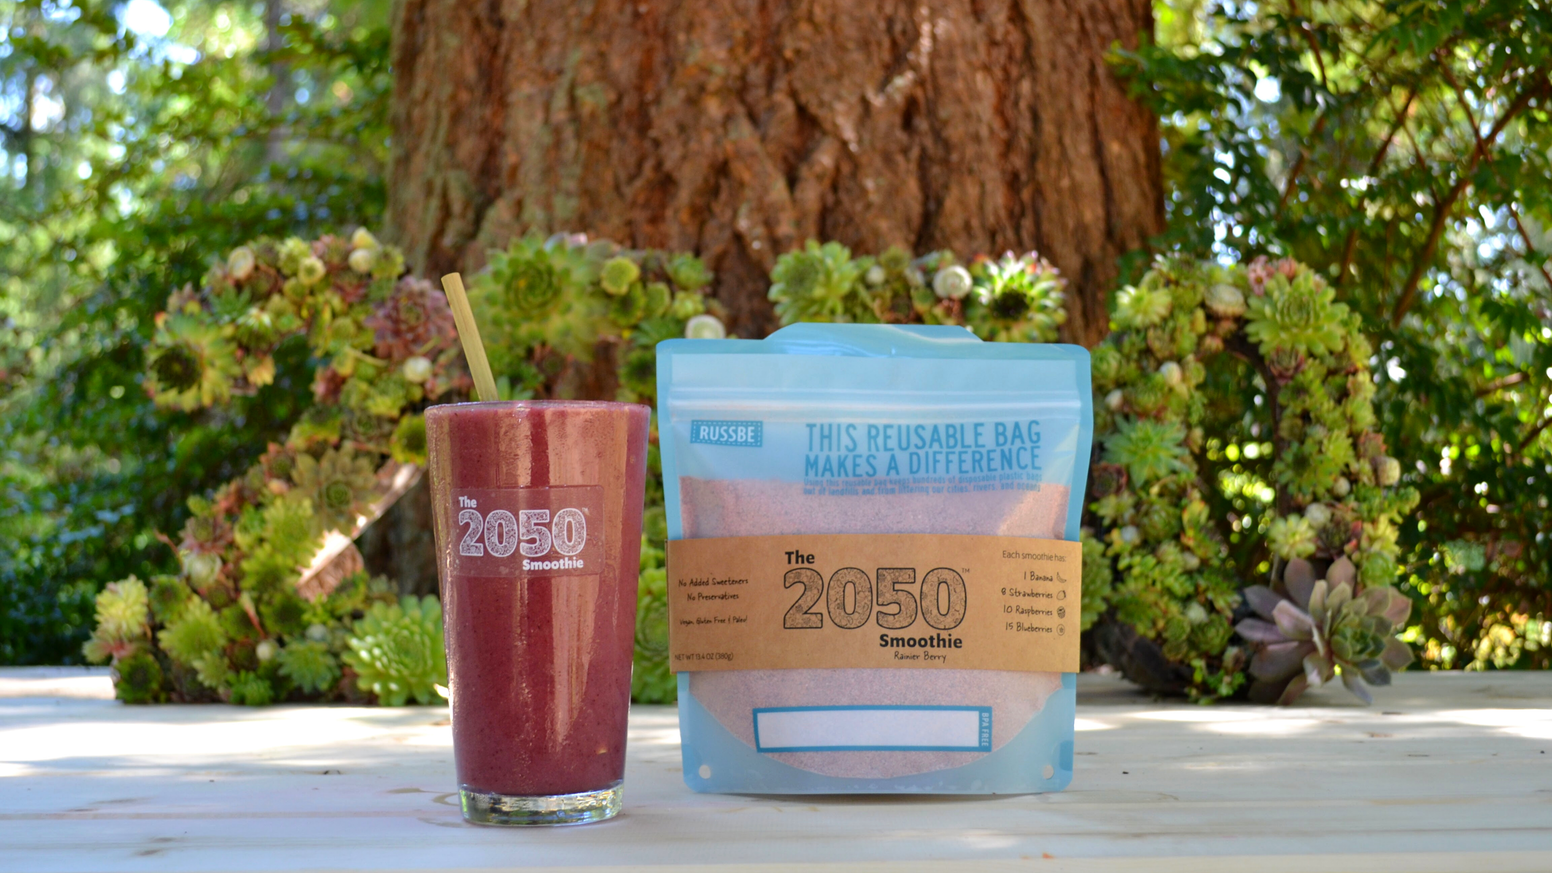 Sustainable. Nutritious. Convenient. Prepare a delicious frozen smoothie from rescued produce in under 60 seconds!